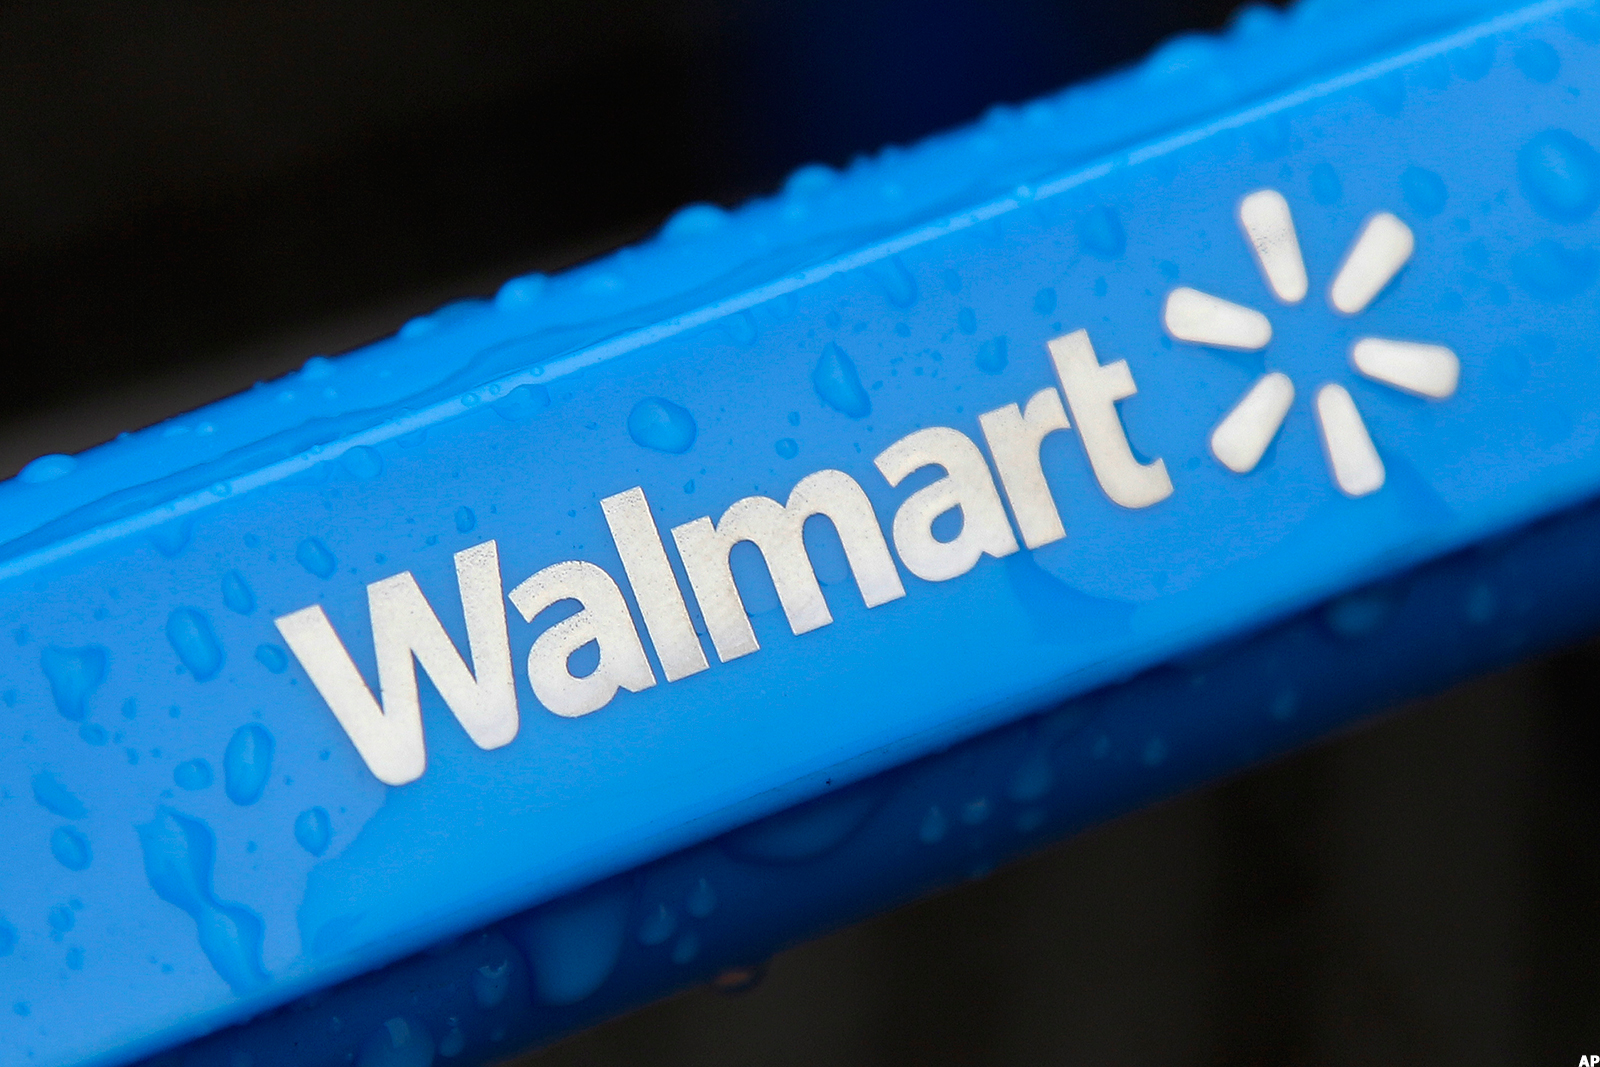 Walmart (WMT) Stock Closed Up, Vudu Launches Free Video